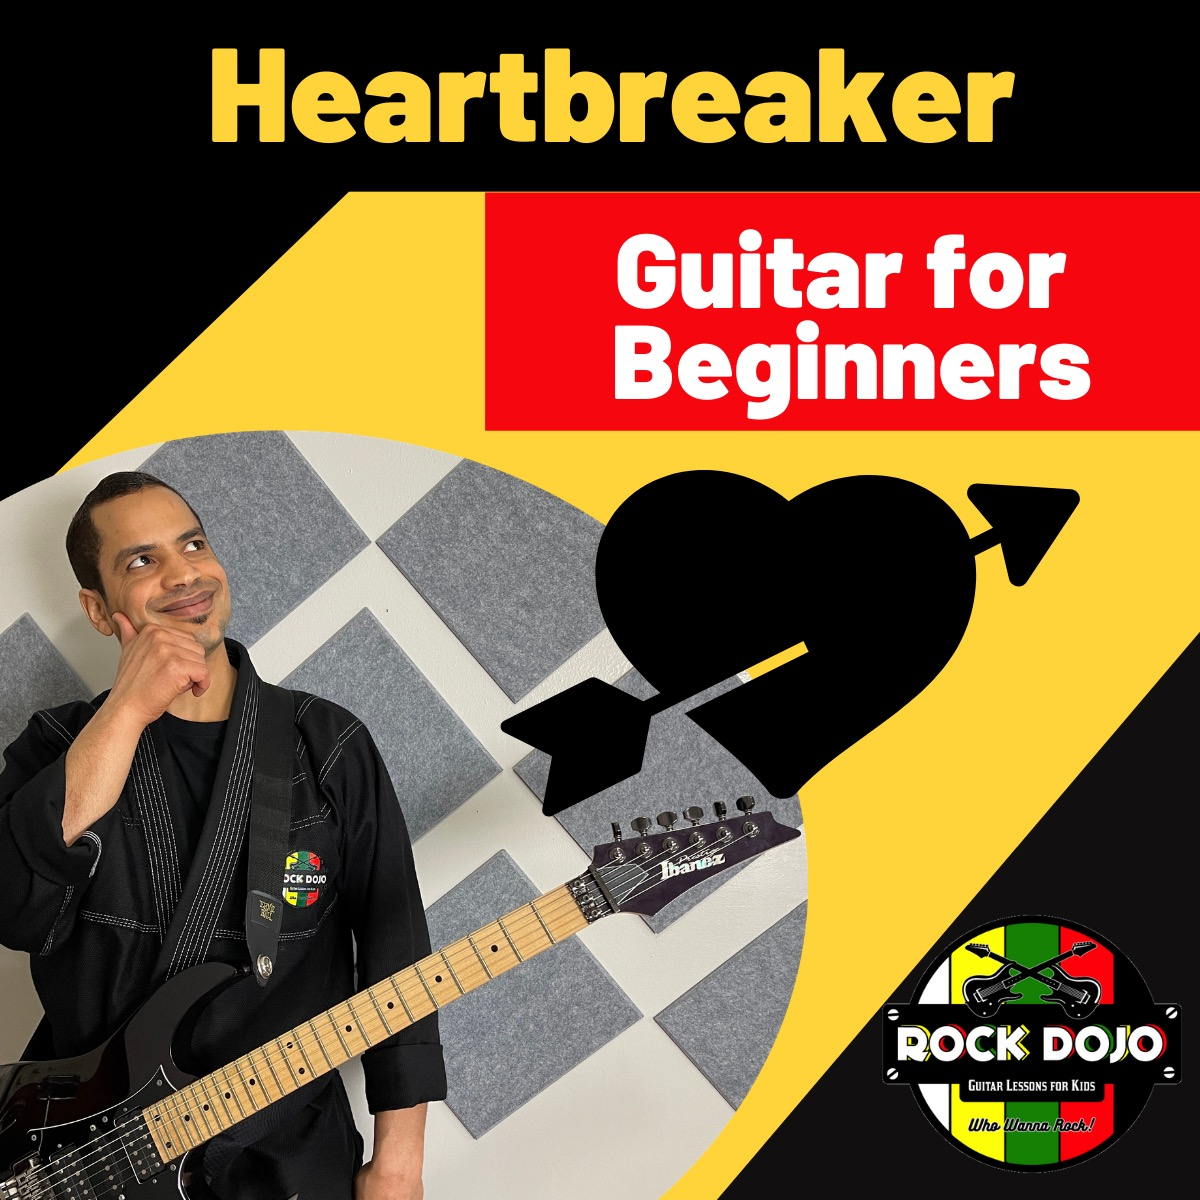 Learn how to play heartbreaker on guitar in this free online guitar lesson for kids.